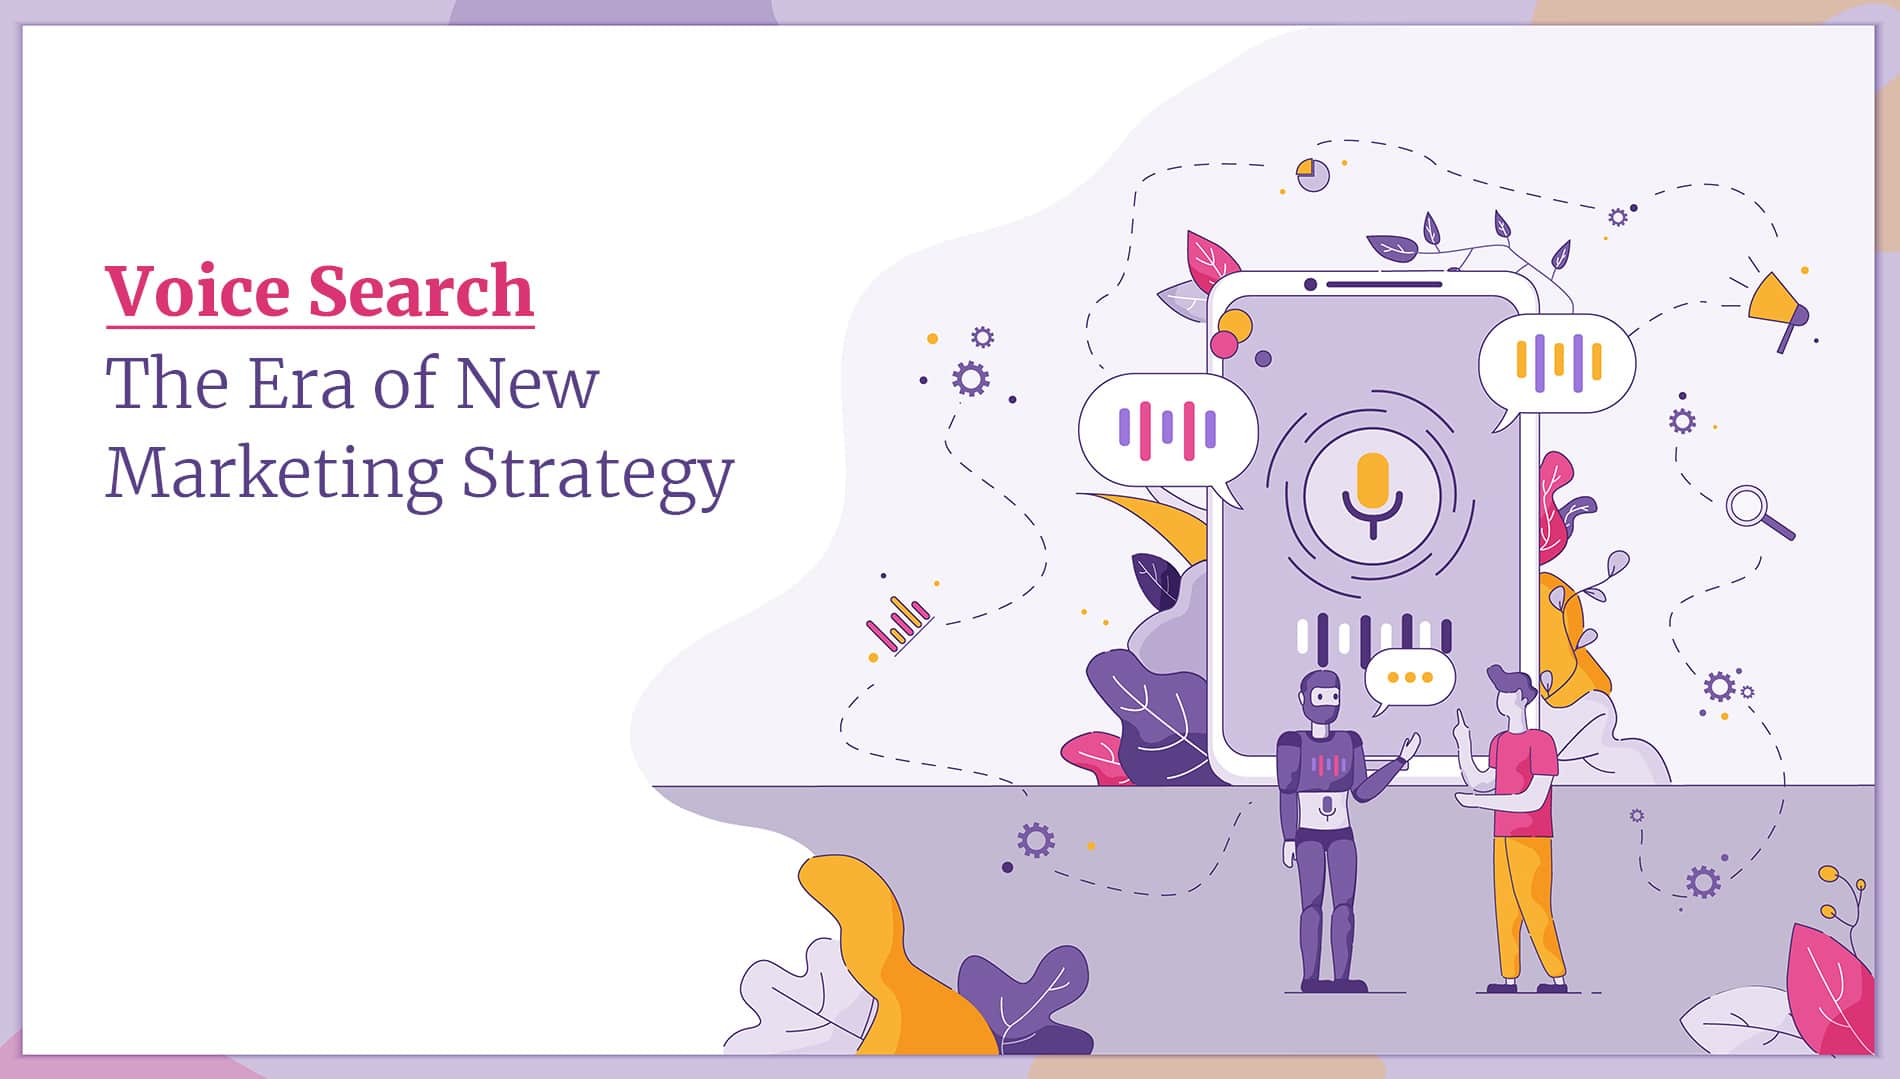 Voice search marketing strategy